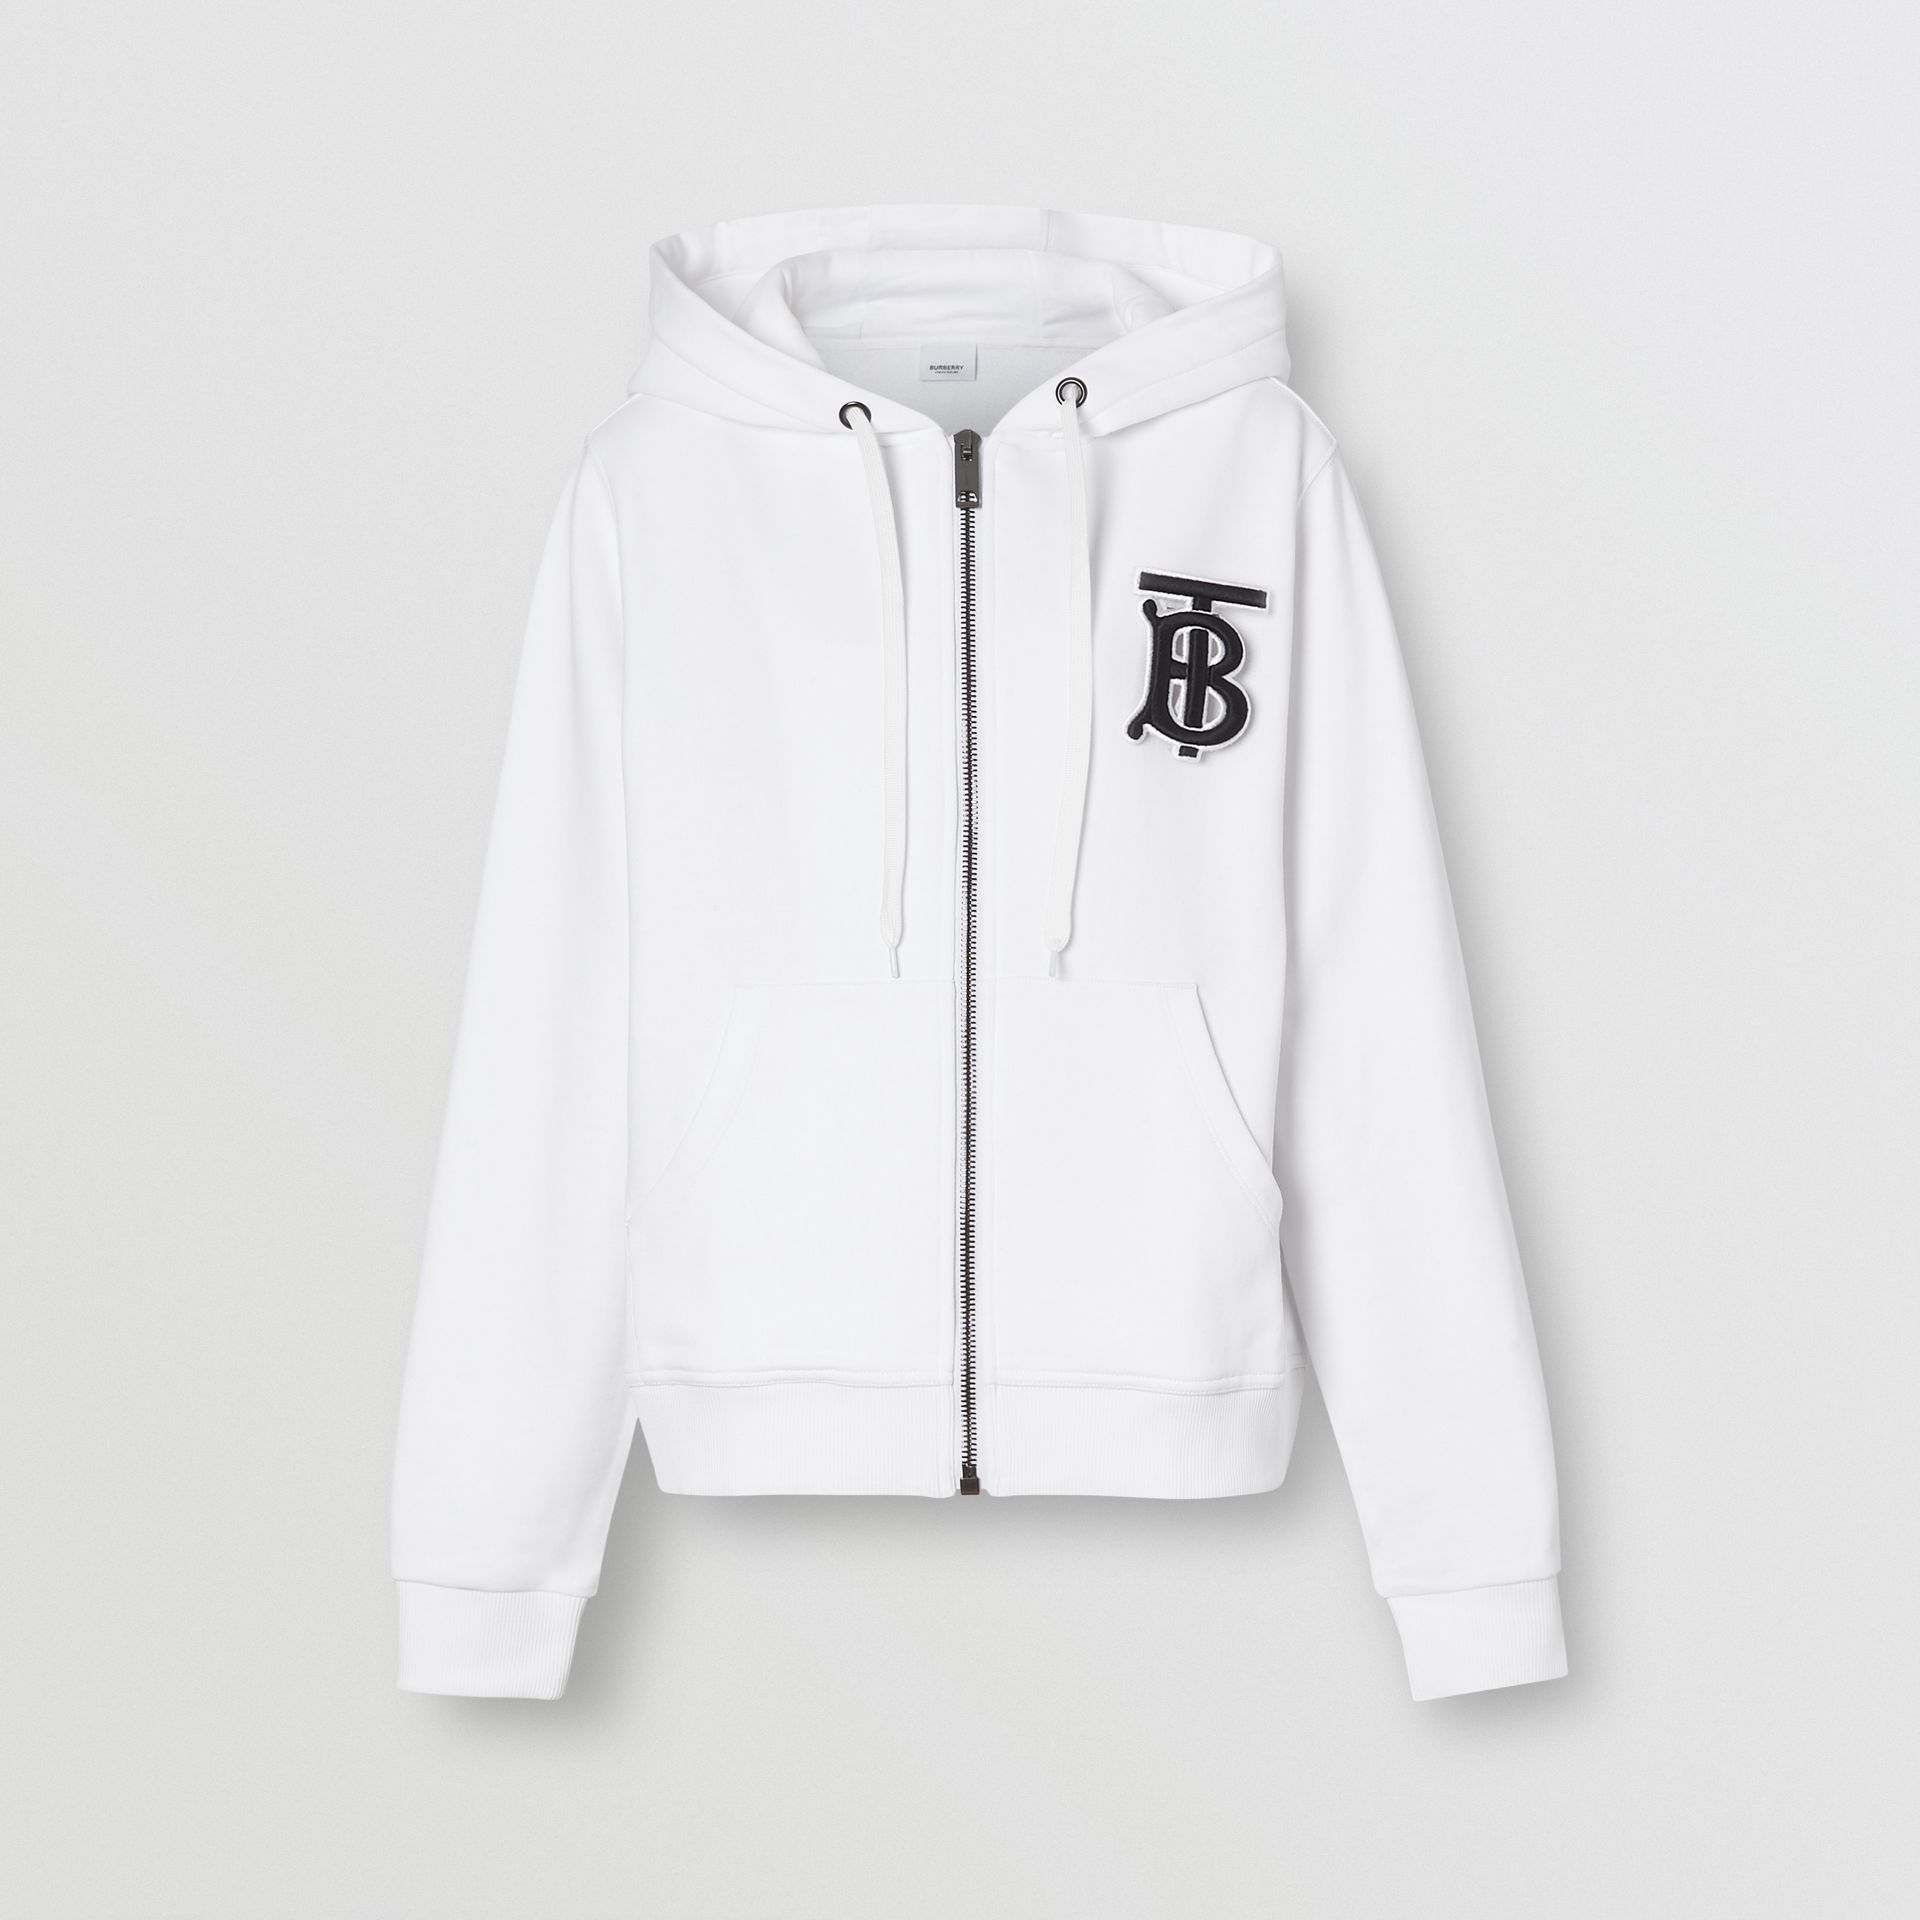 Monogram Motif Cotton Oversized Hooded Top in White - Women | Burberry Hong Kong S.A.R - gallery image 3